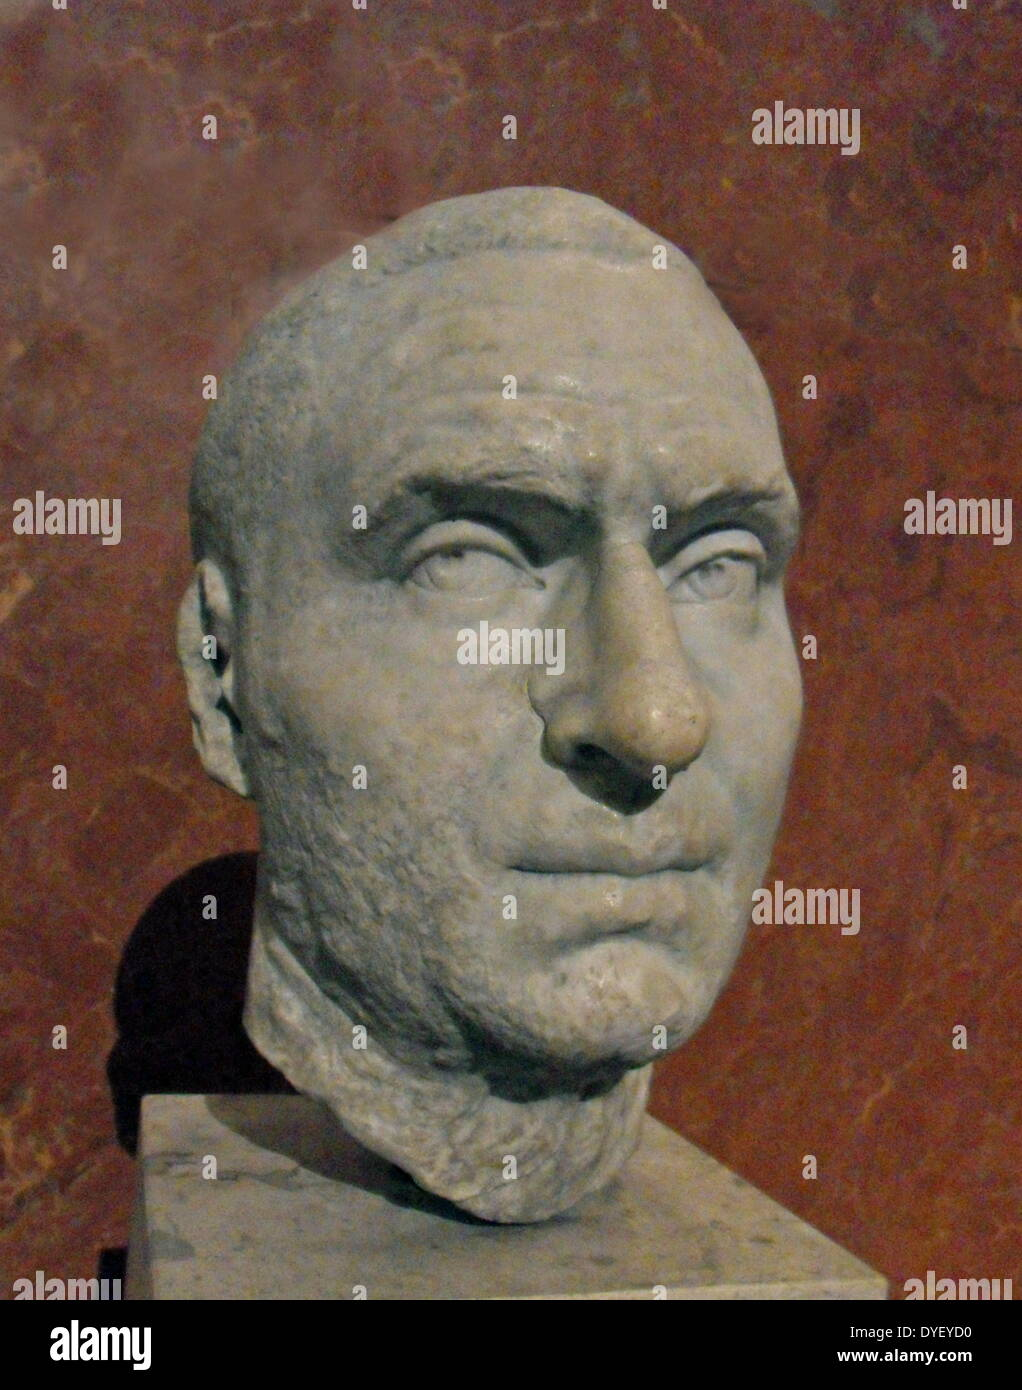 Marble sculpture of unknown man's head. - Stock Image